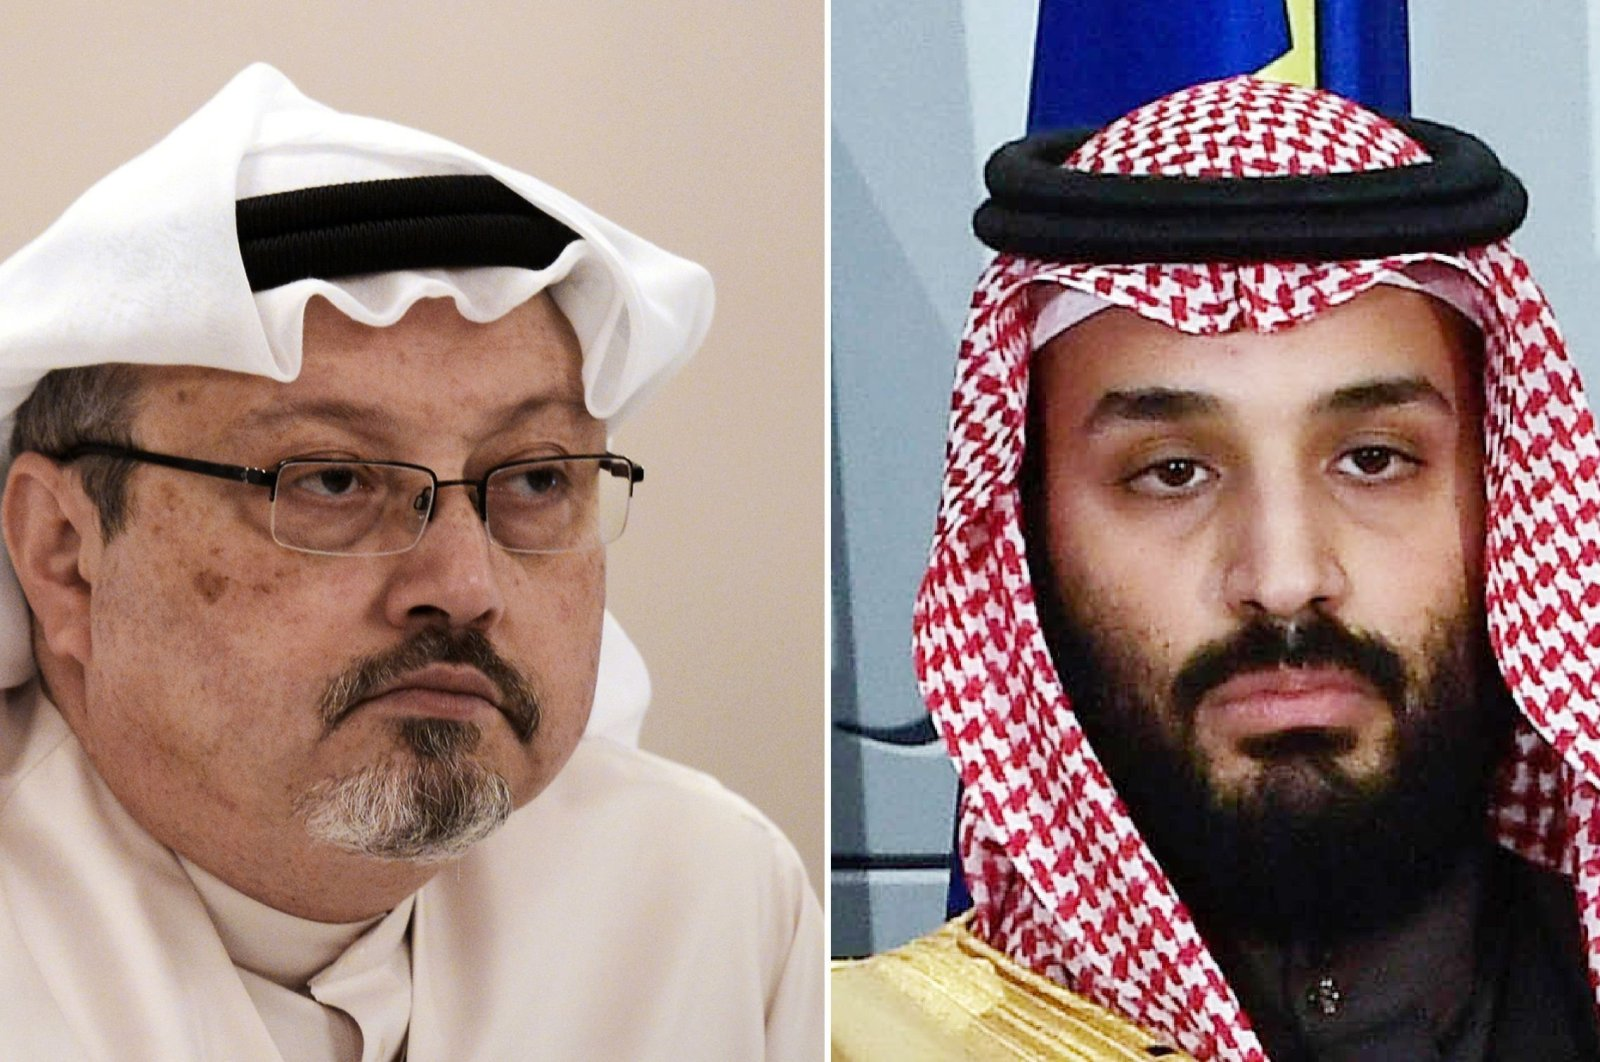 This combination of pictures created on June 20, 2019 shows a file photo taken on December 15, 2014 of Saudi journalist Jamal Khashoggi (L) during a press conference in the Bahraini capital Manama and a file photo taken on April 12, 2018 of Saudi Arabia's crown prince Mohammed bin Salman poses at La Moncloa palace in Madrid. (AFP Photo)